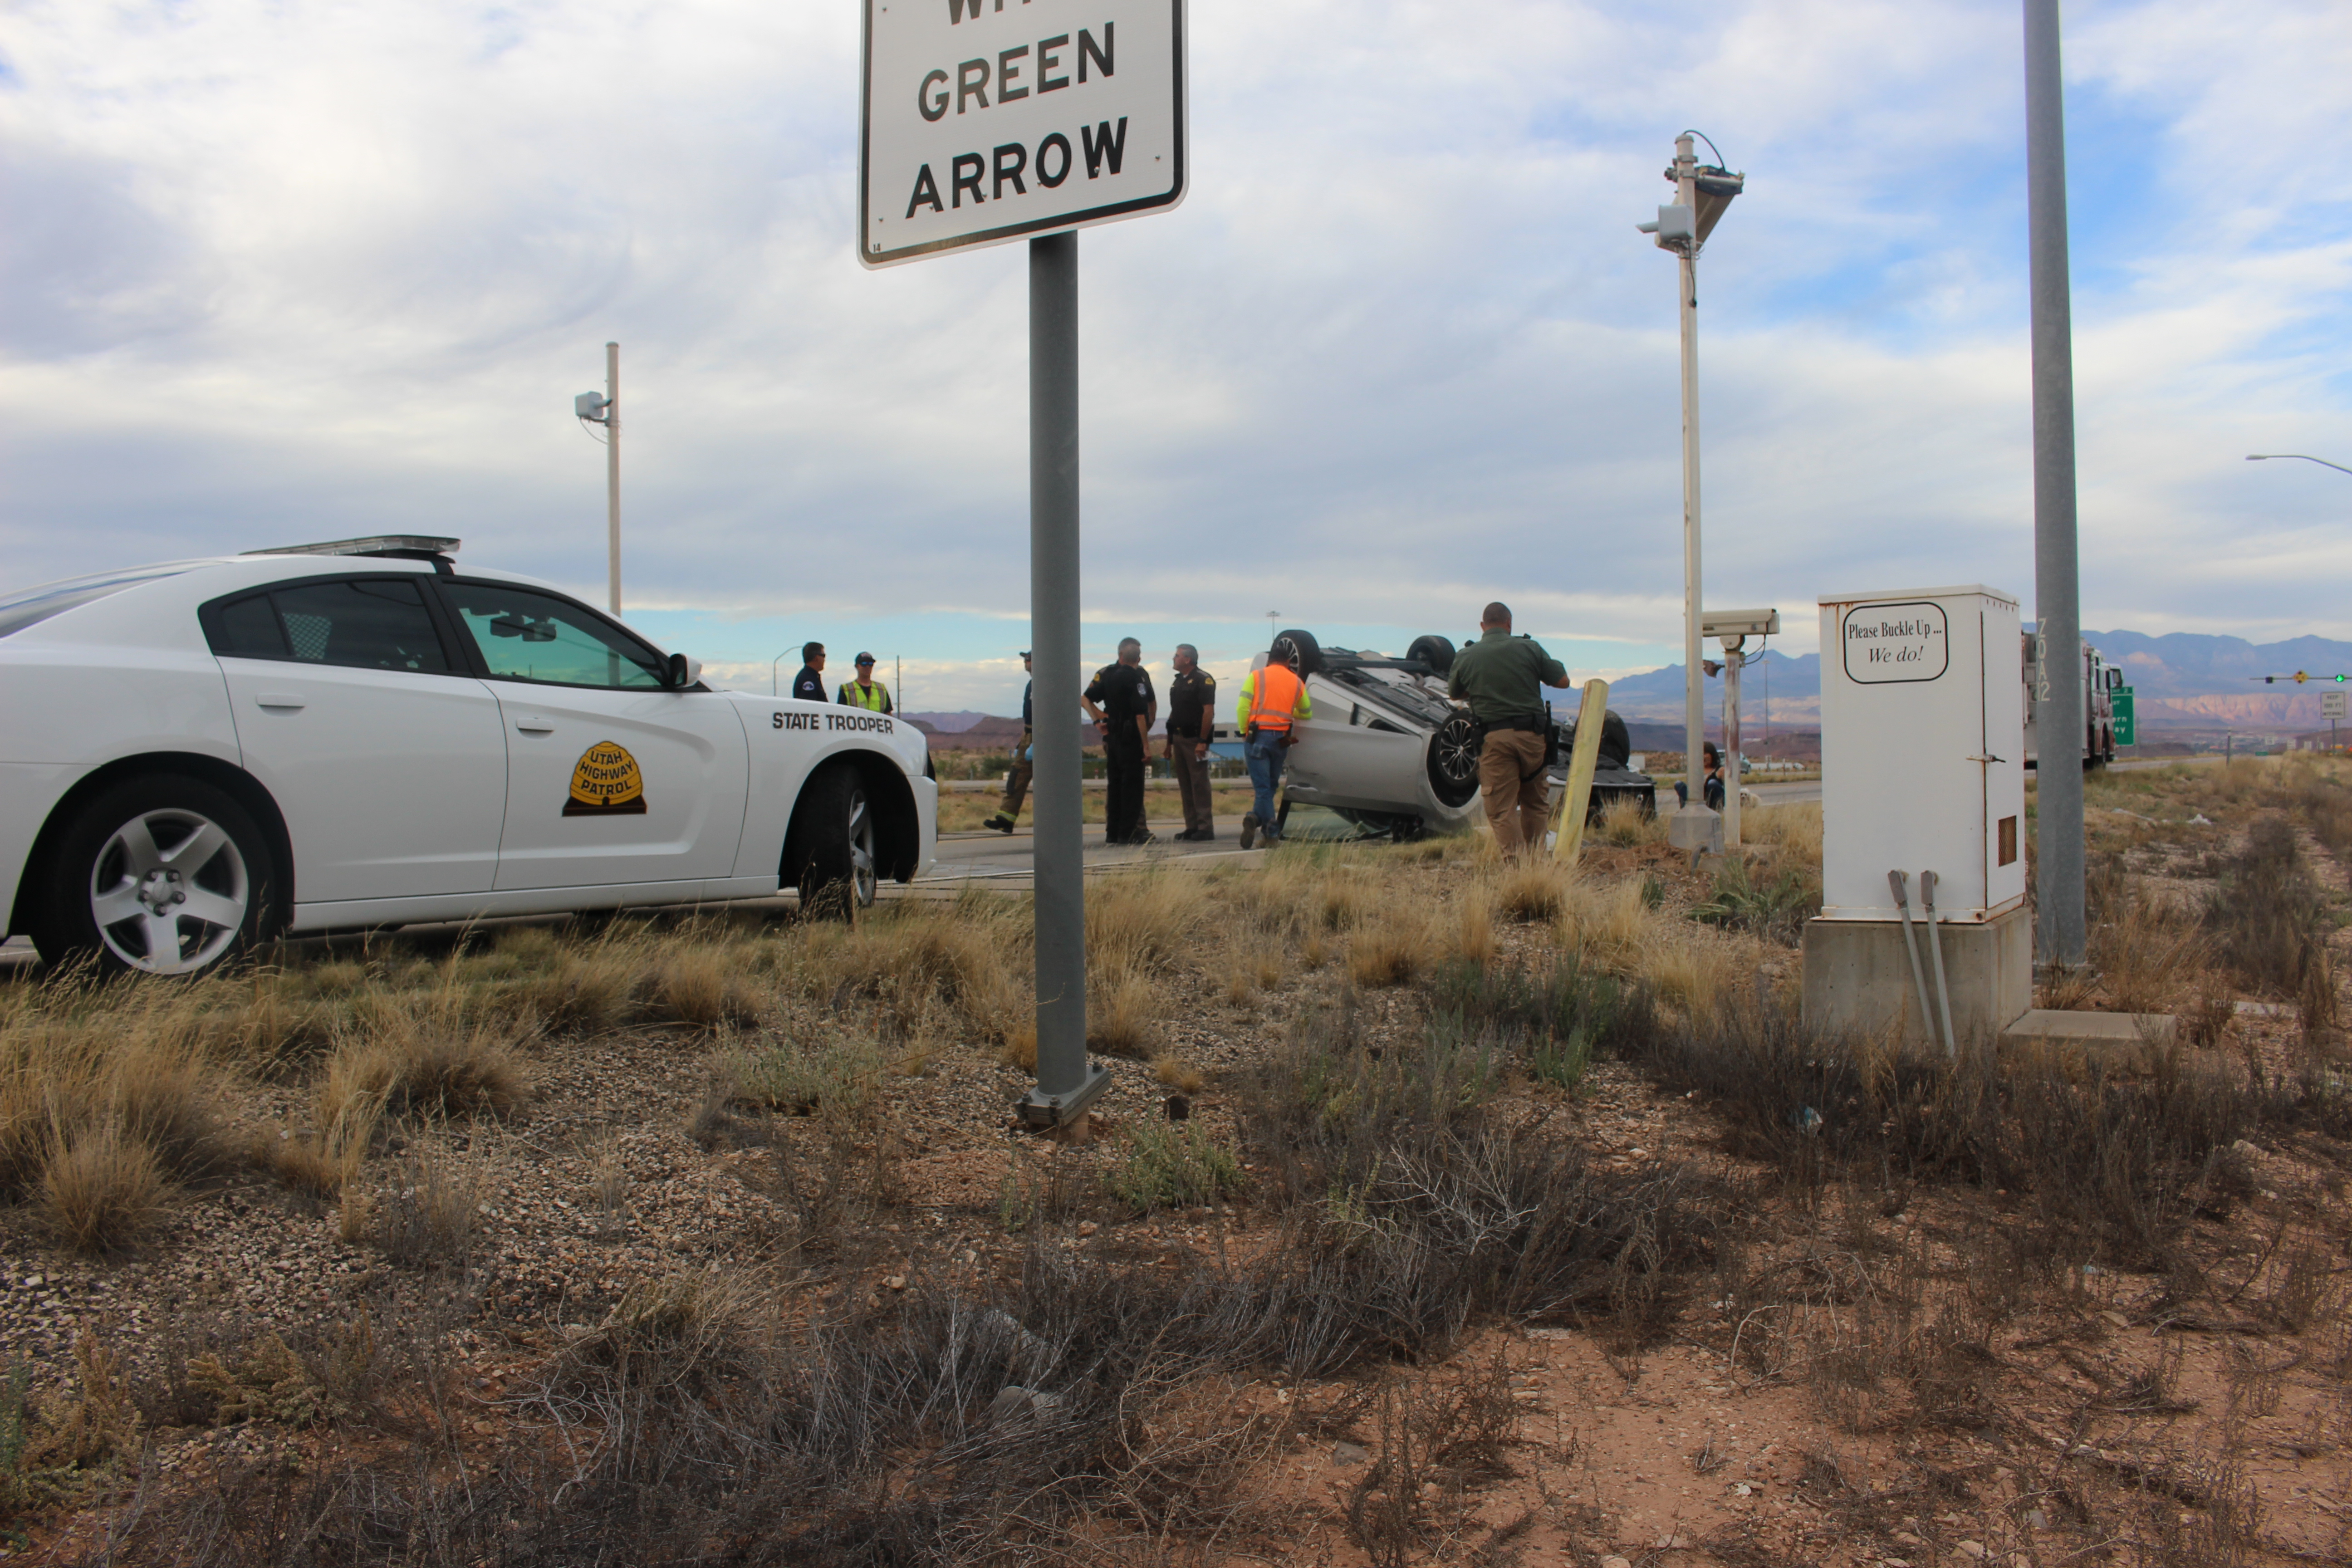 Emergency crews respond after a car rolled over at the Utah-Arizona port of entry, Oct. 14, 2016 | Photo by Joseph Witham, St. George News